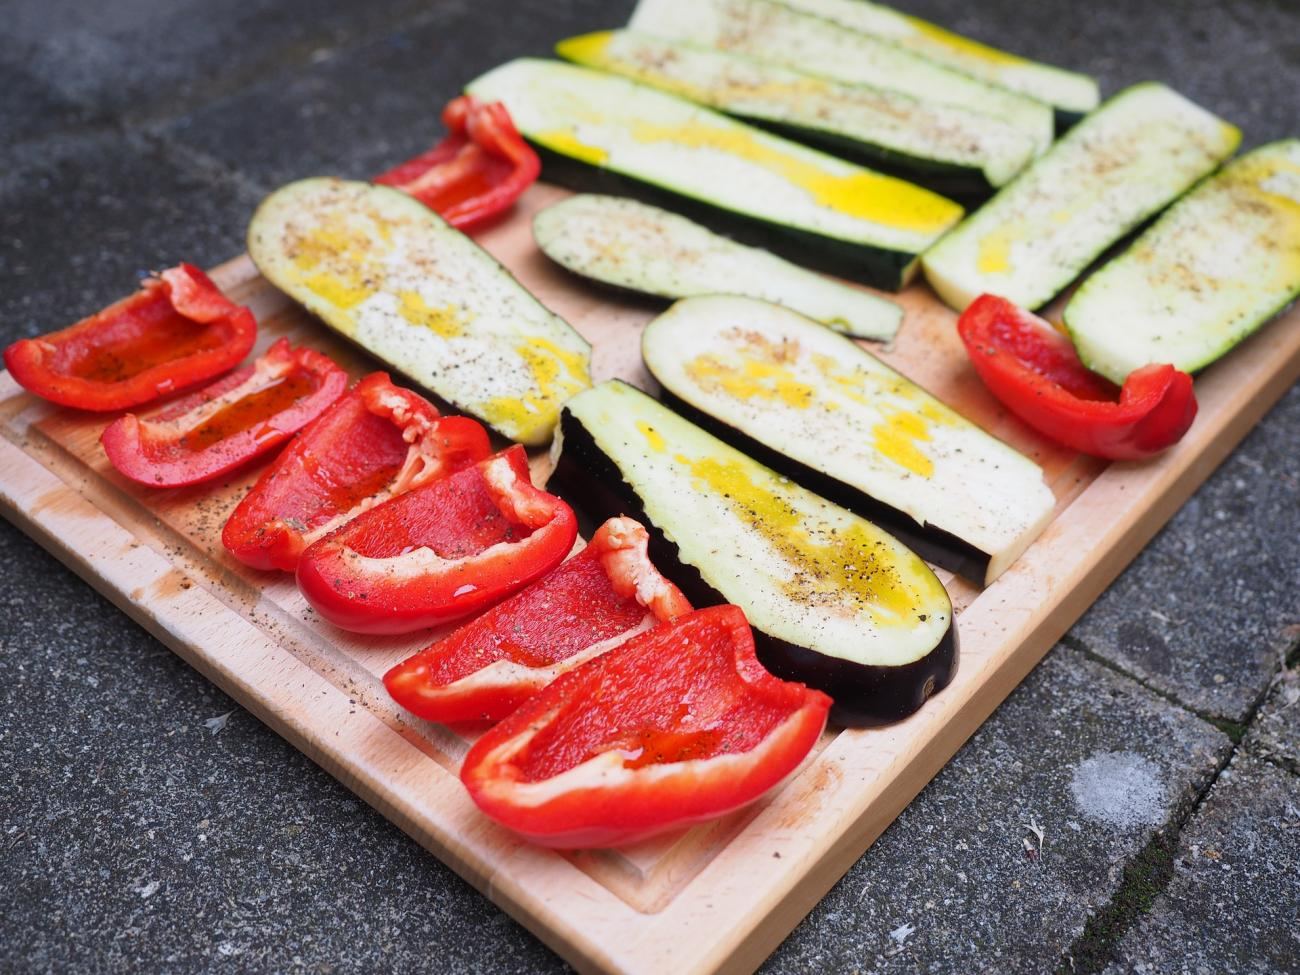 Grilled Vegetables Preparation